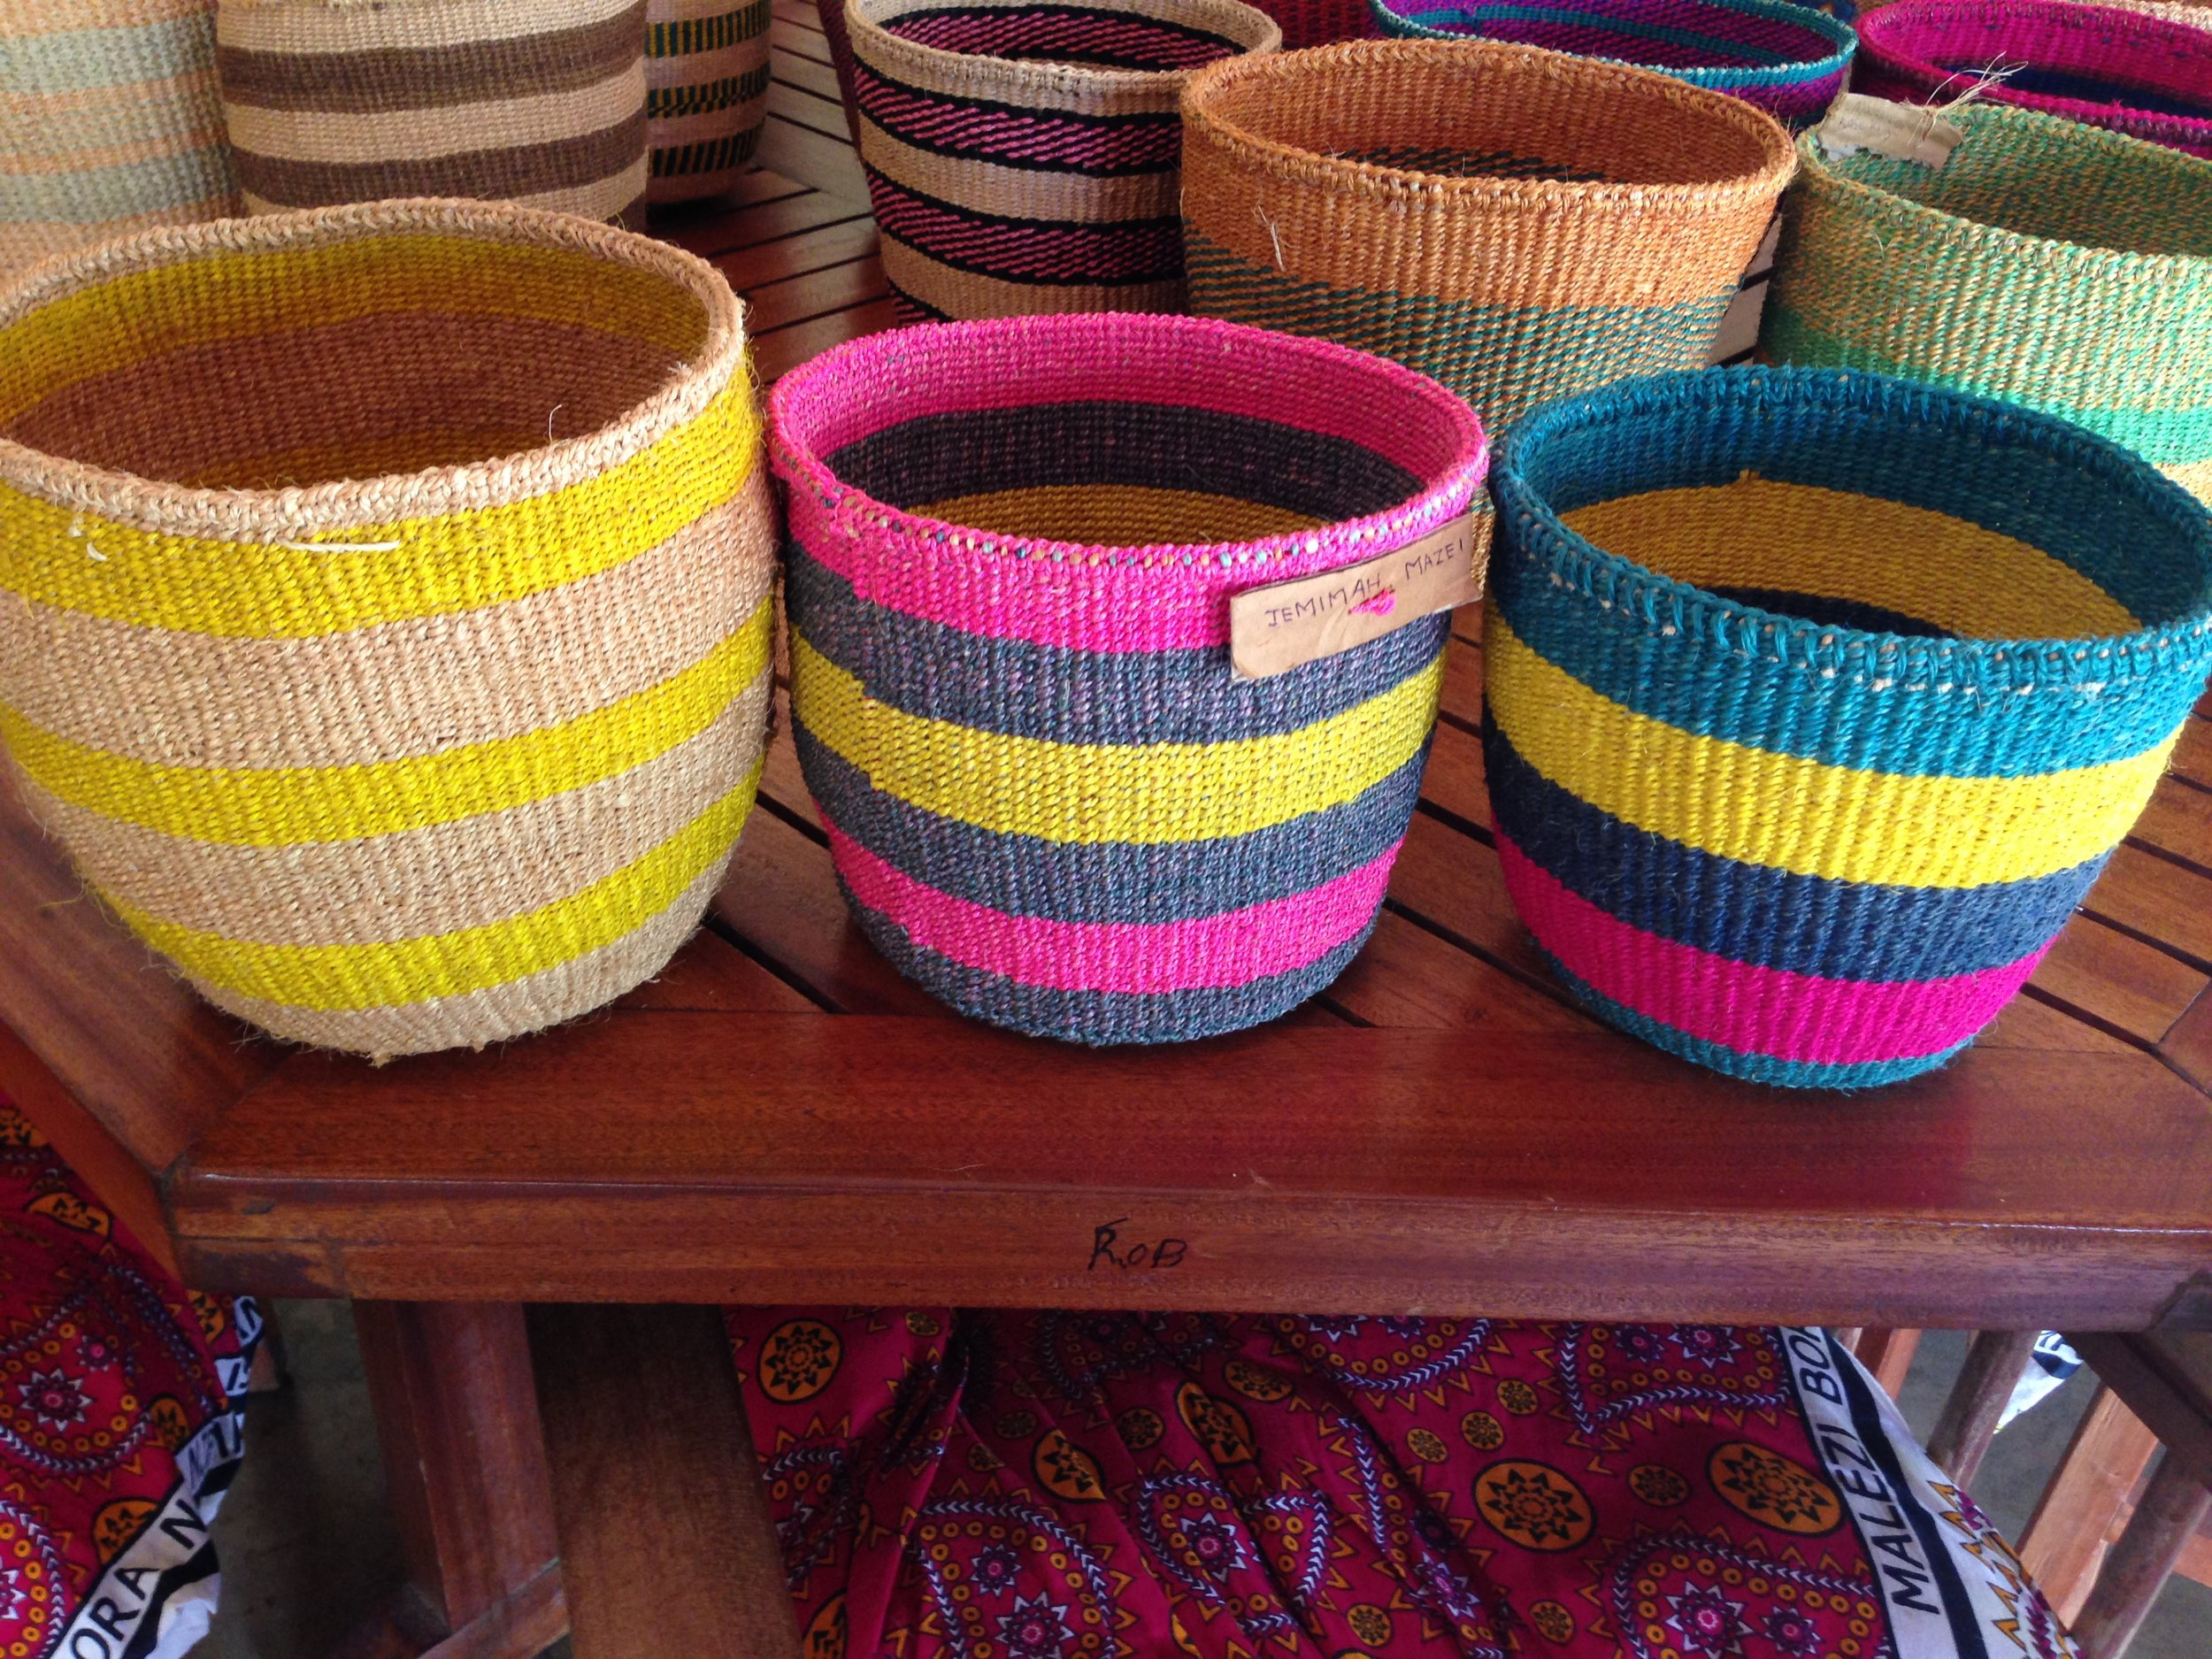 basket and soap_1204_0005.JPG